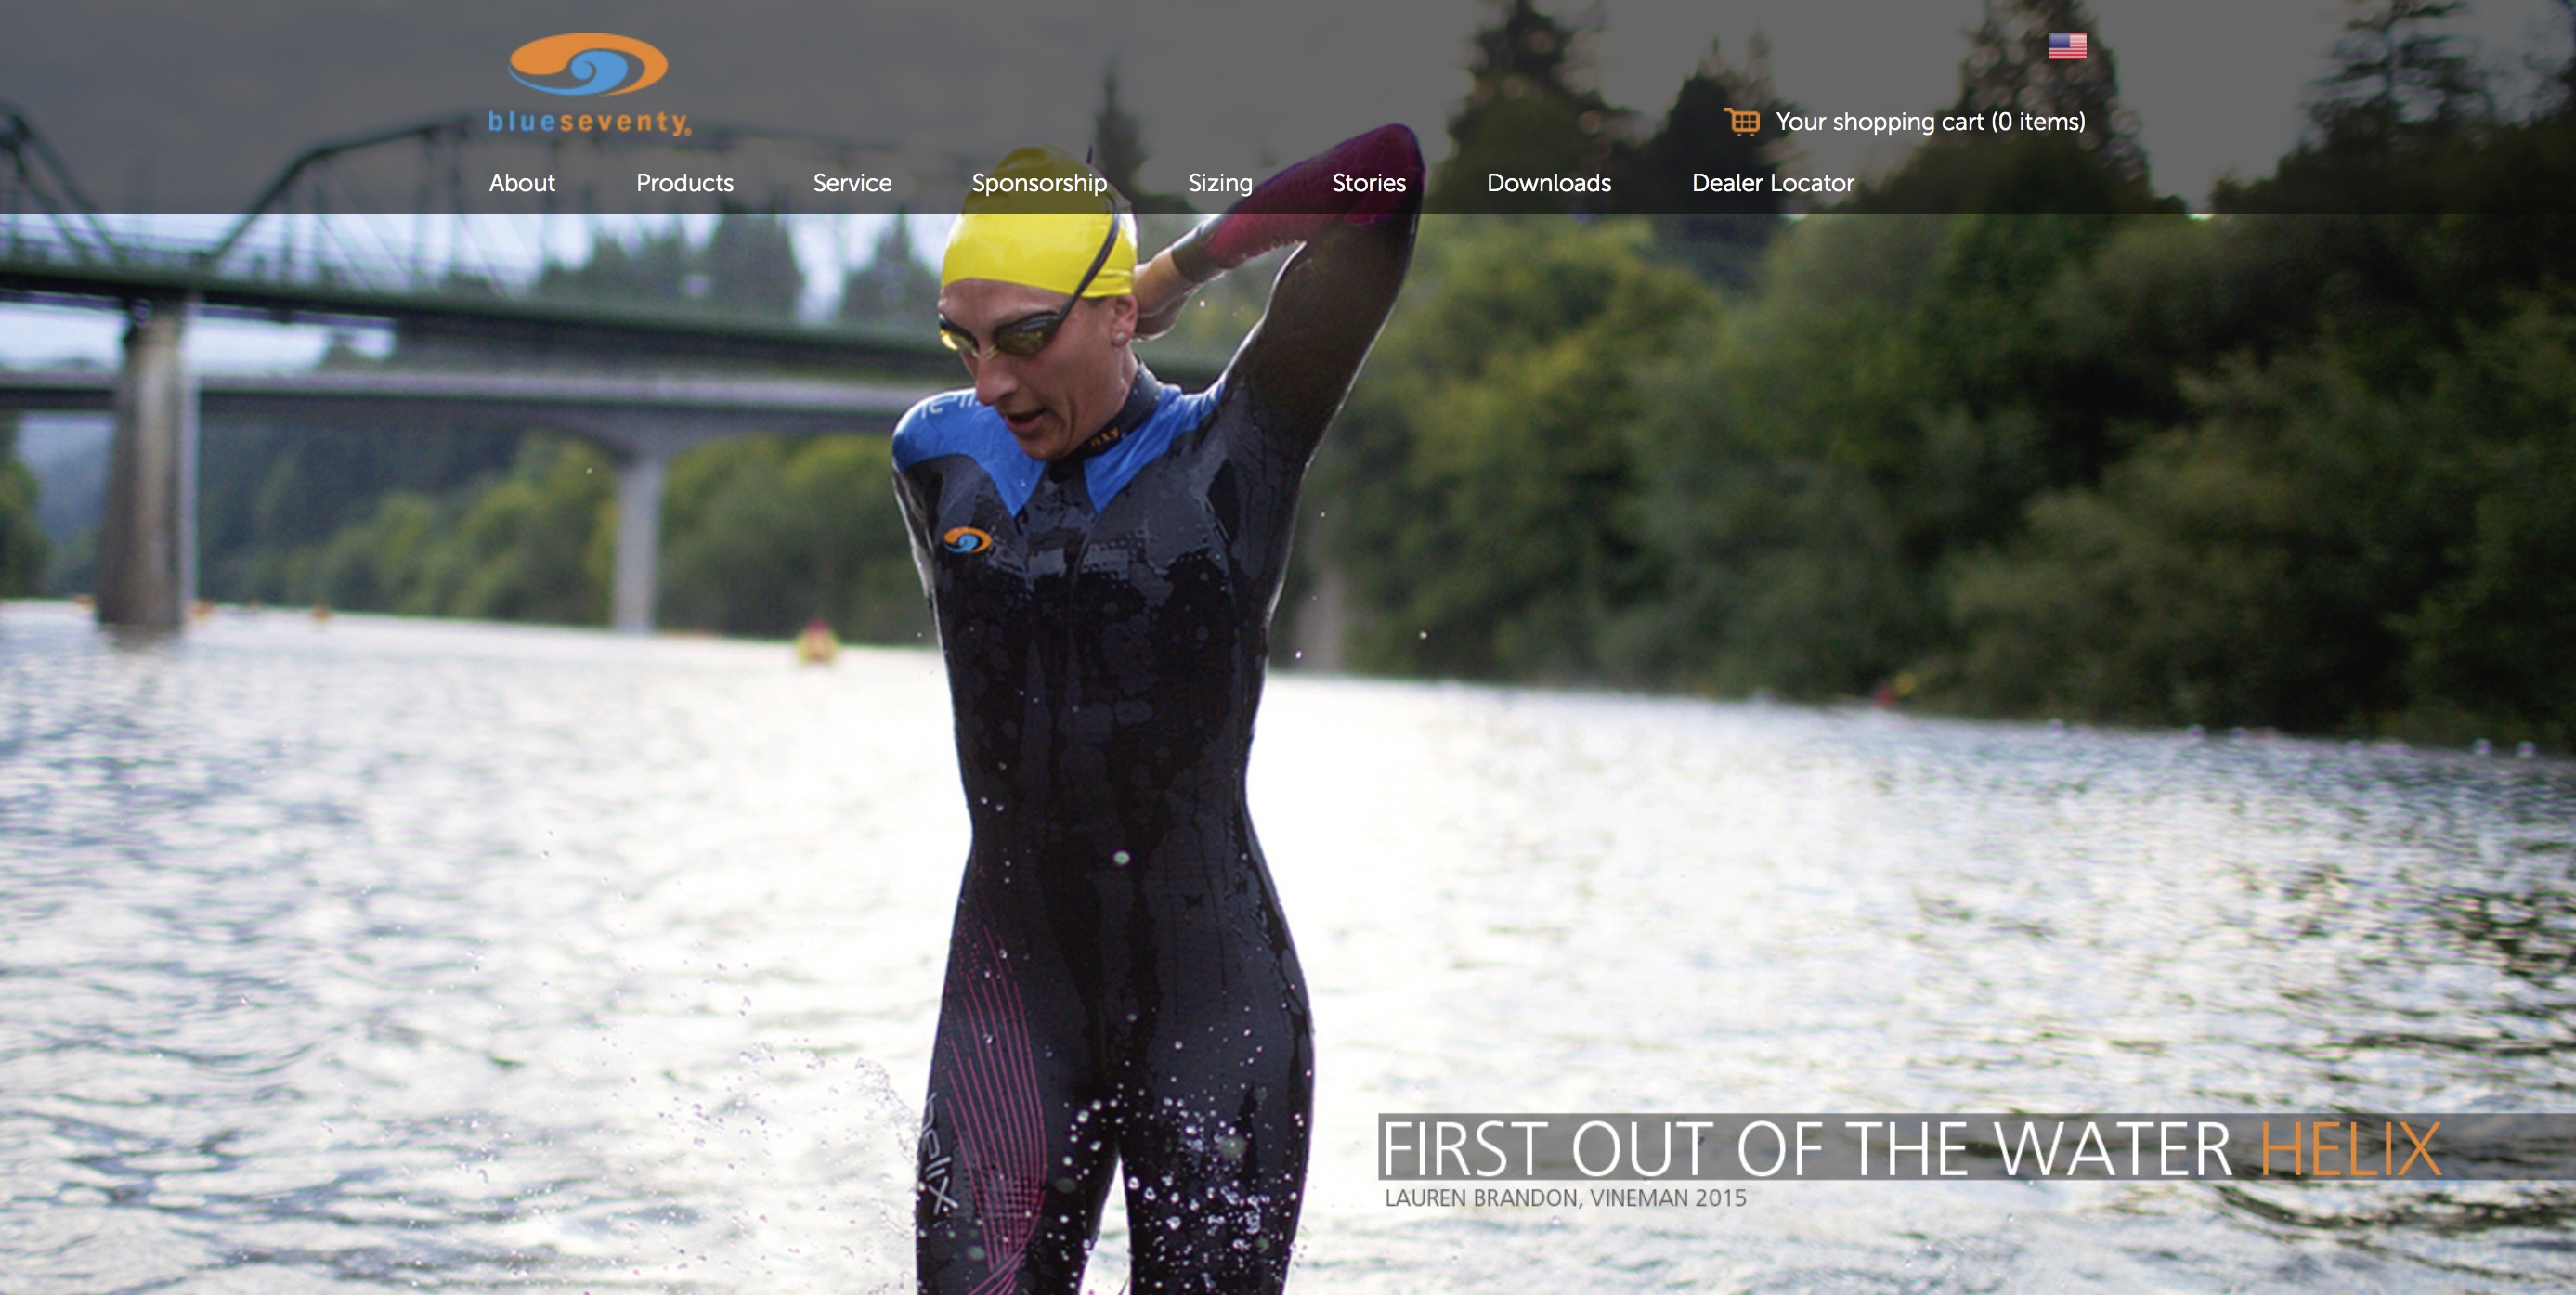 BlueSeventy Wetsuits